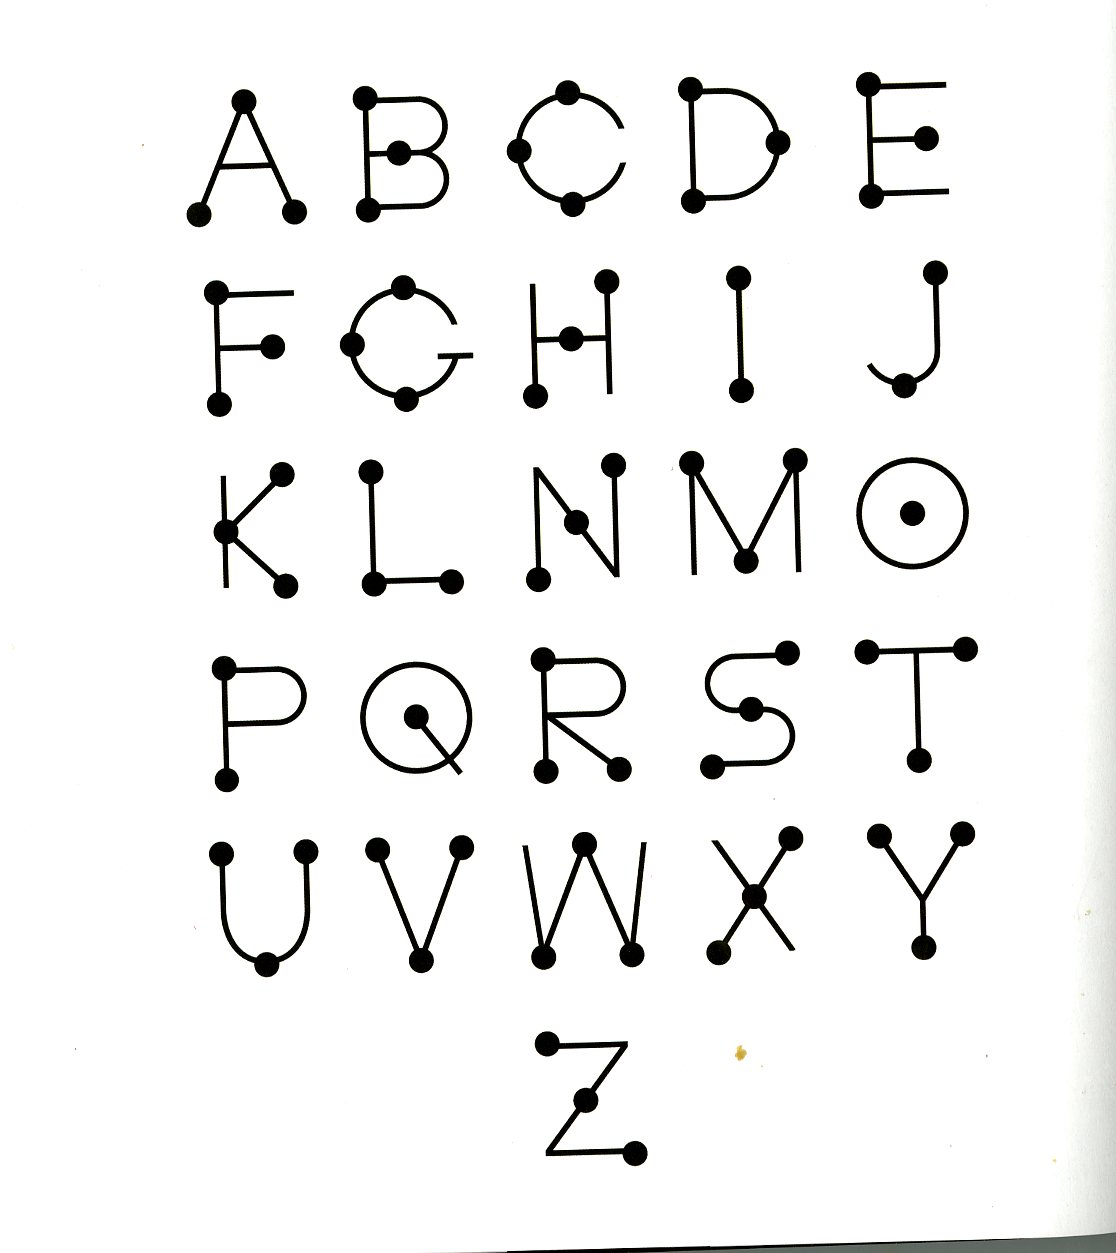 Alphabet typography design out of dots and lines